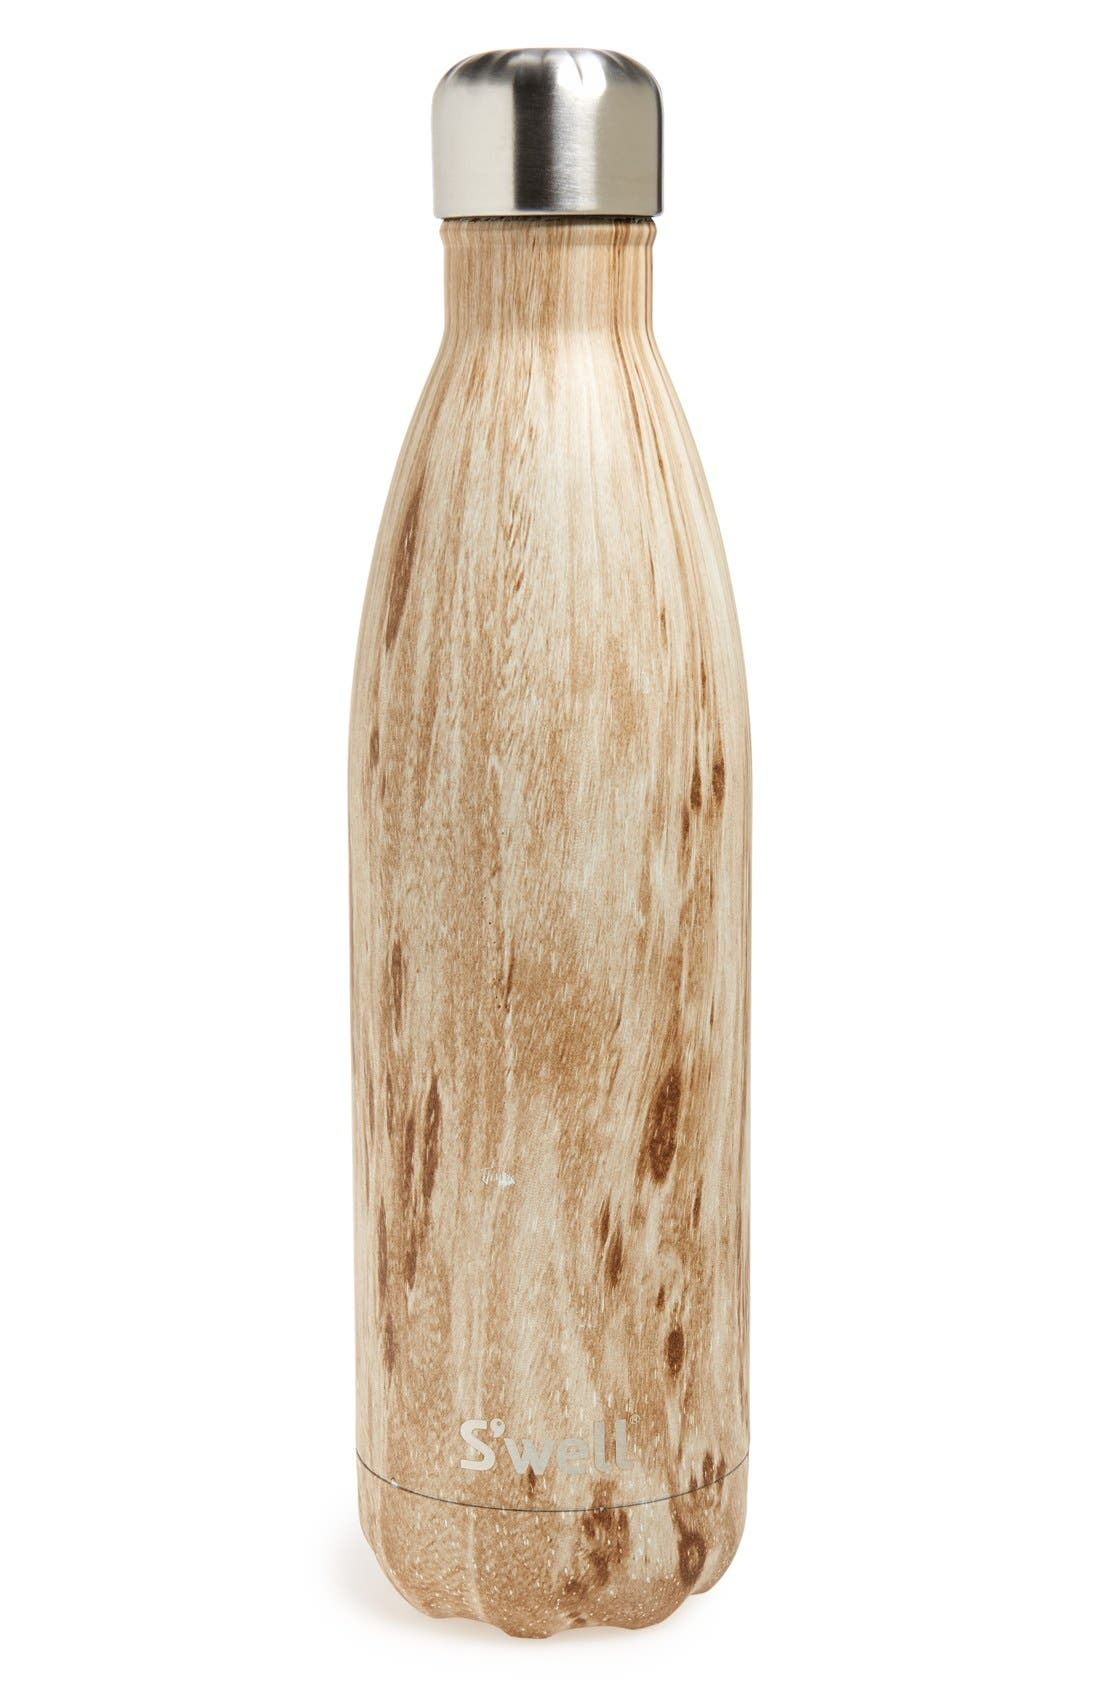 S'well 'Blonde Wood' Stainless Steel Water Bottle